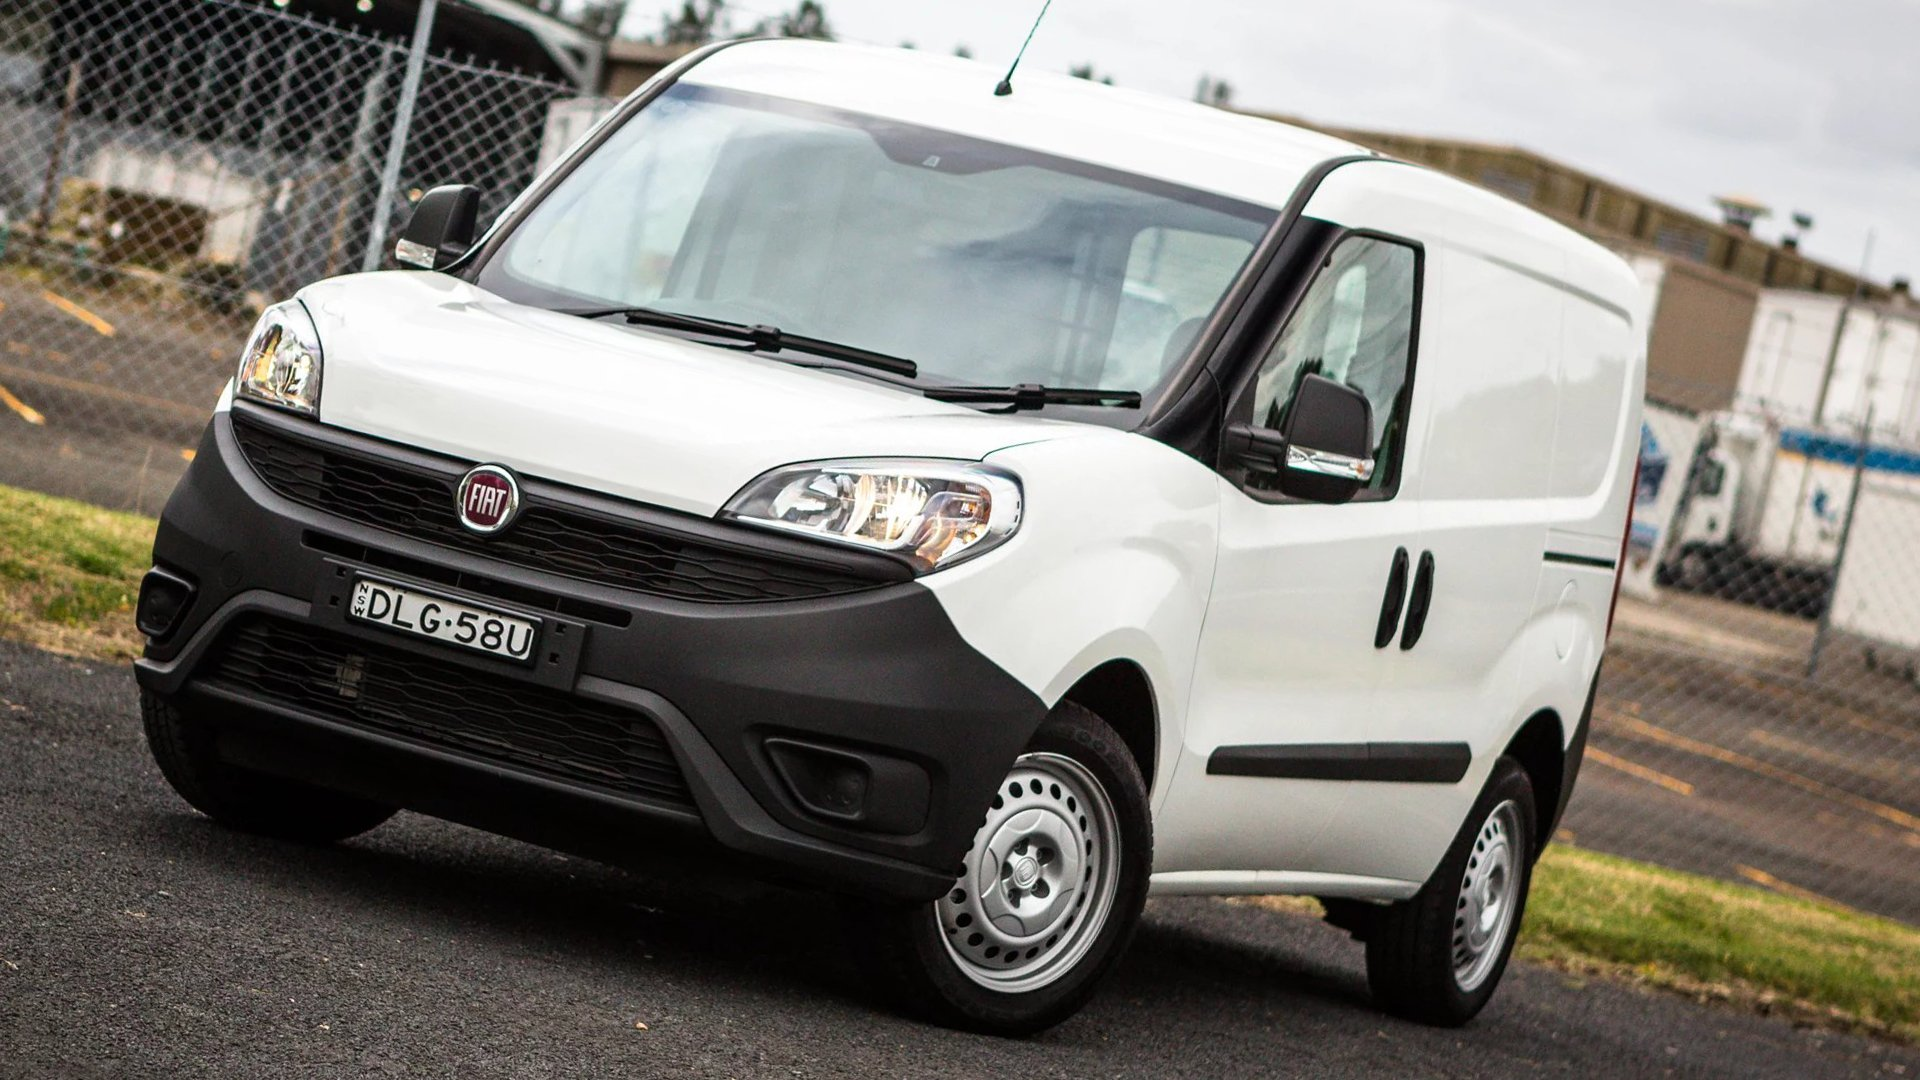 New 2019 FIAT Doblo Review